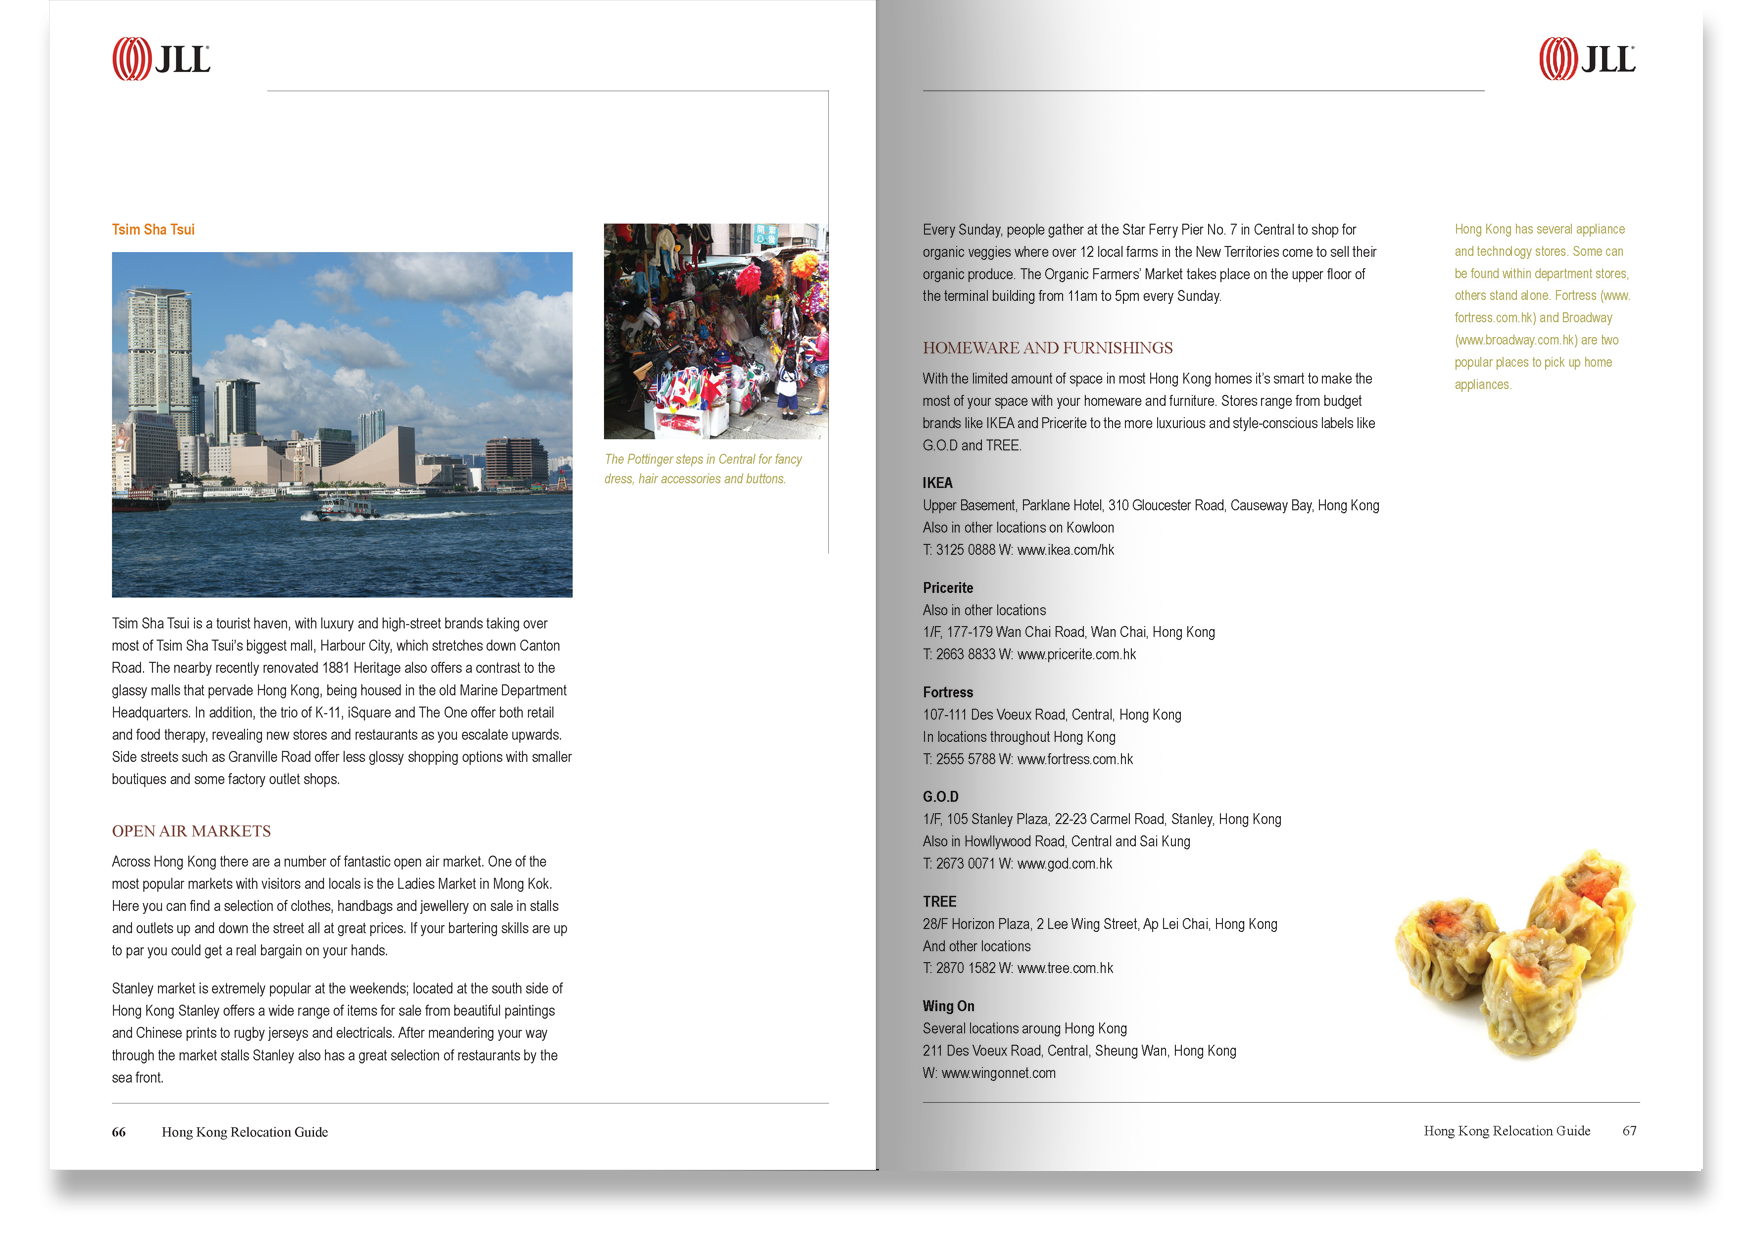 JLL – Relocation Guide